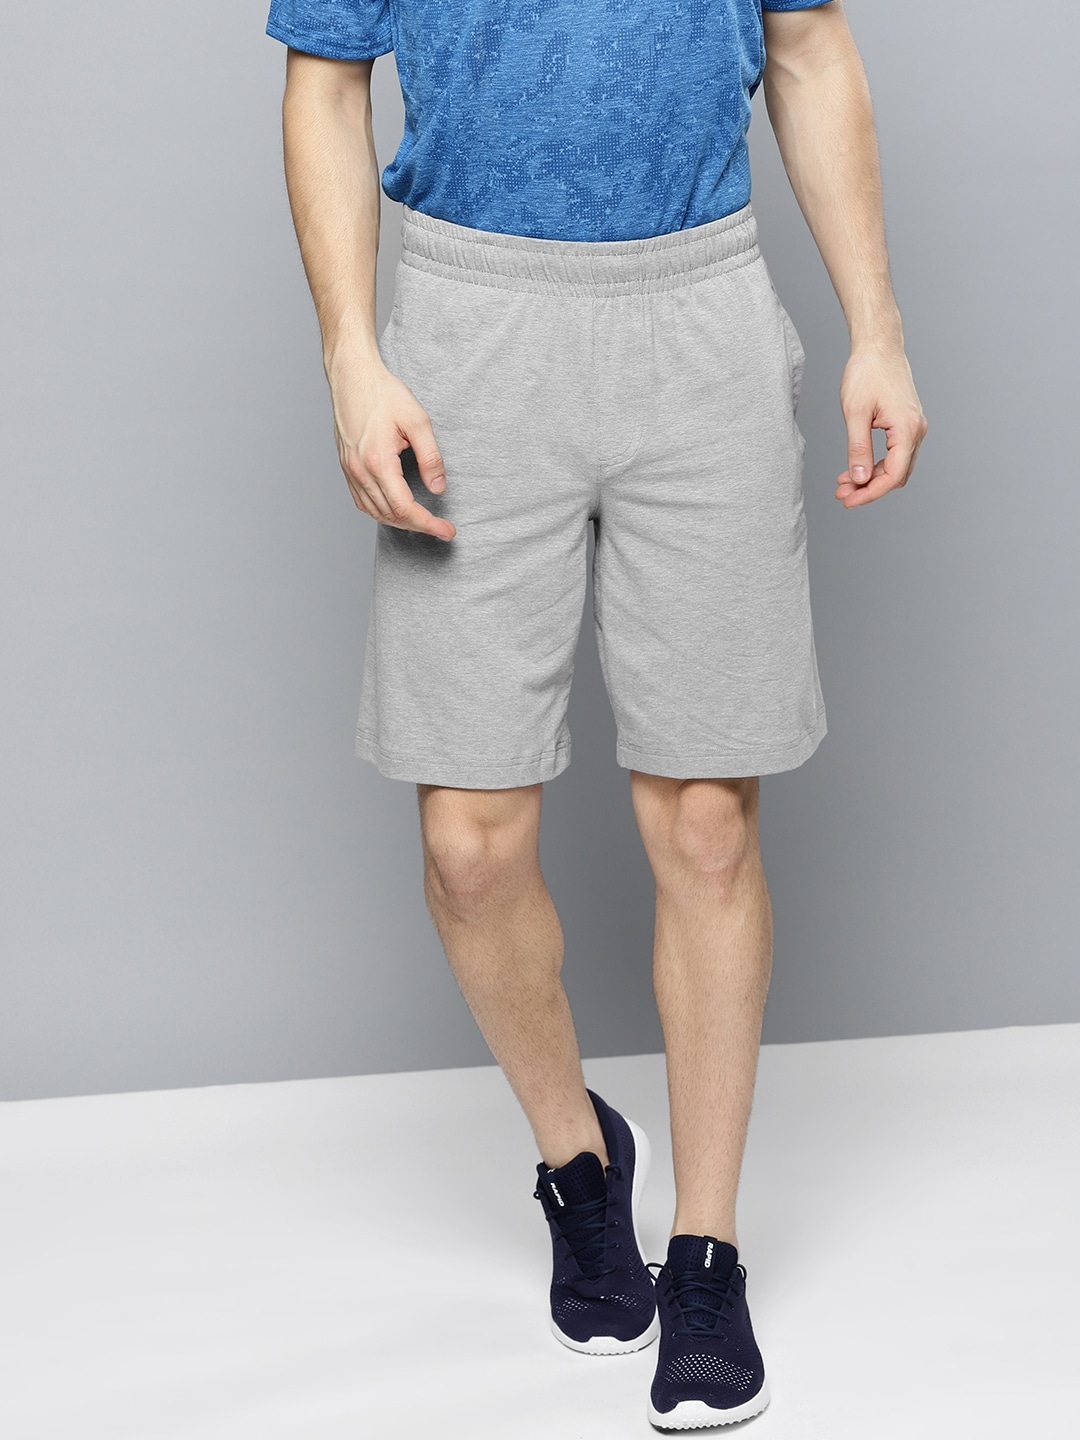 1b2af97b07 Shorts | Buy Shorts Online in India at Best Price